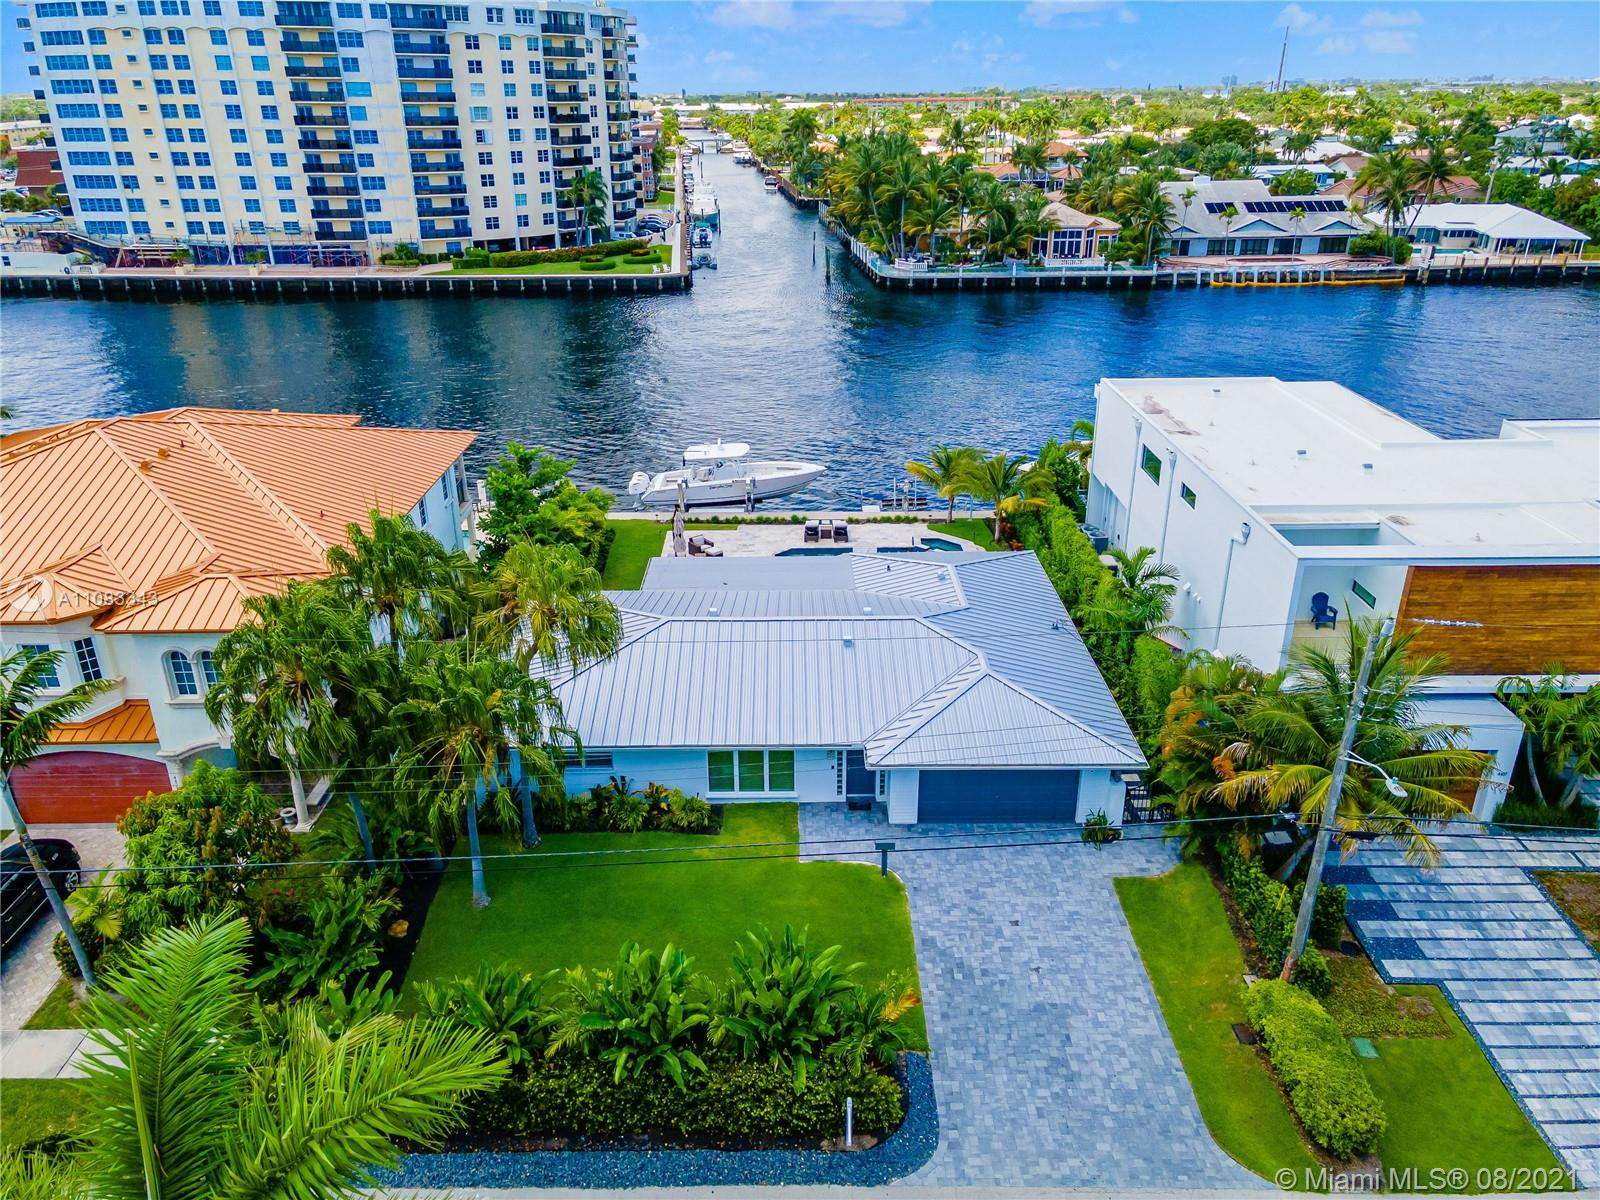 4431 W Tradewinds Ave, Lauderdale By The Sea, Florida 33308